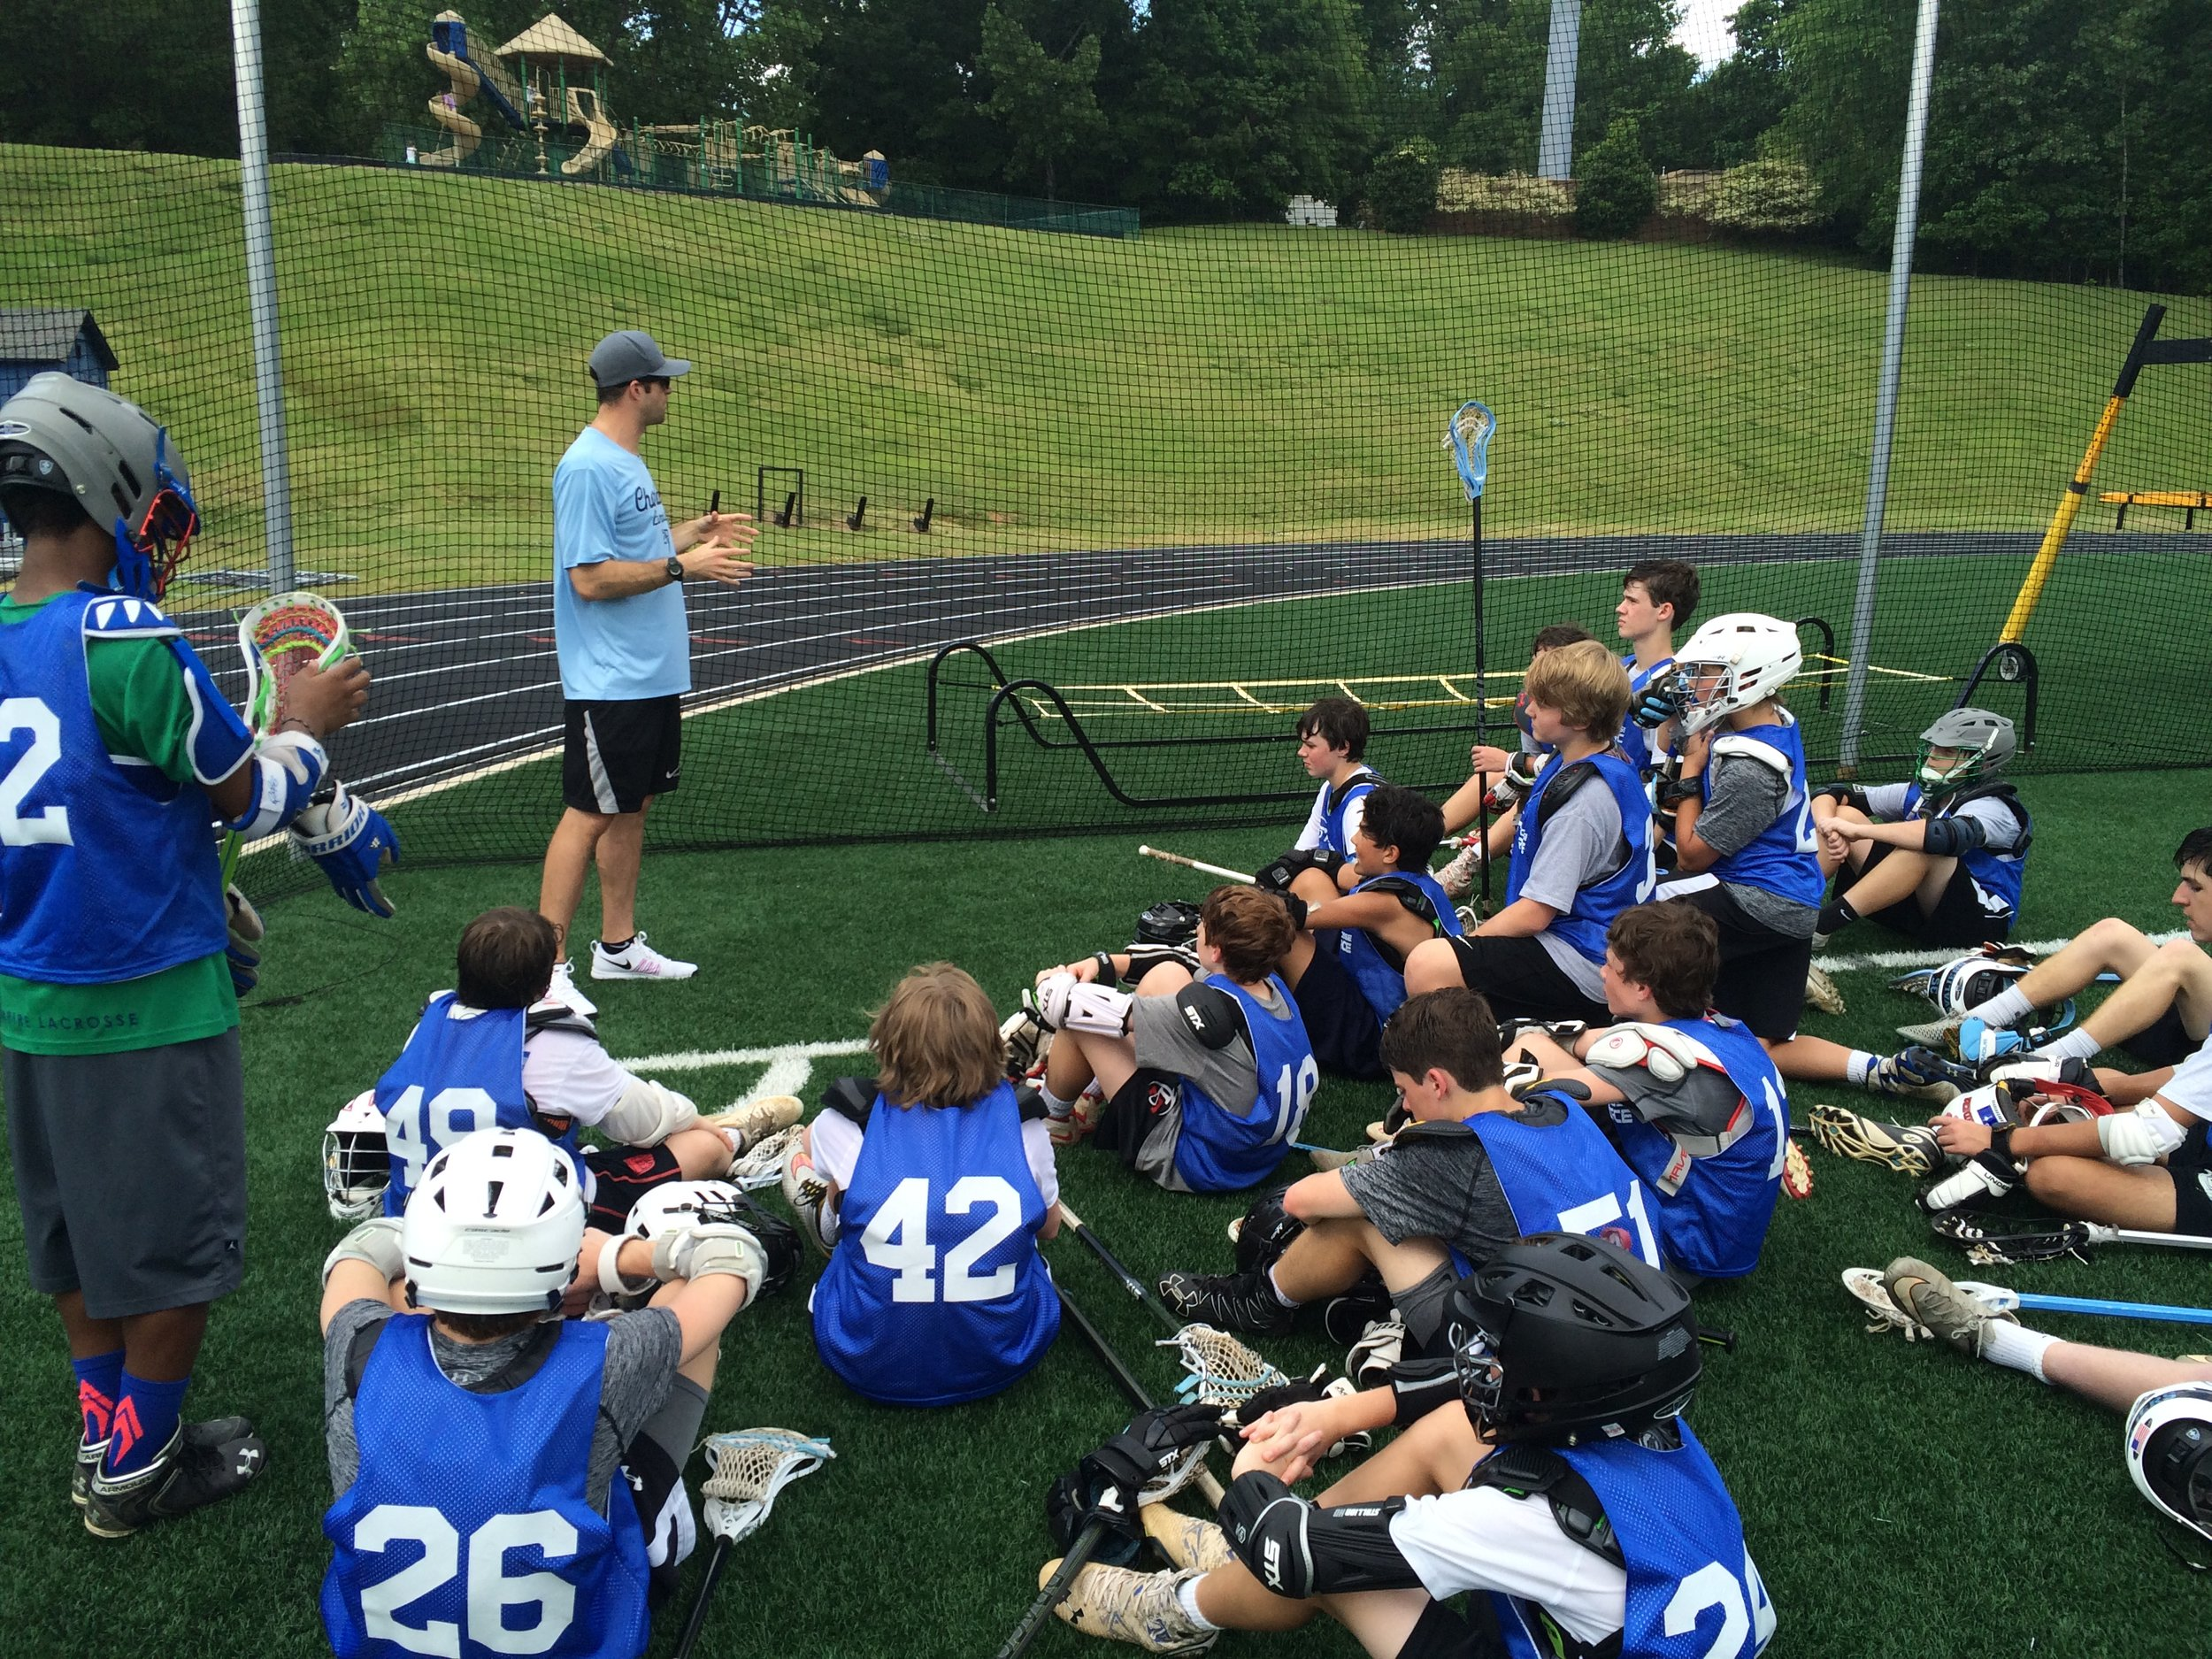 PLL Pro and Director of 24/7, Ryan Flanagan, during our Team 24/7 and Lacrosse Force play day.